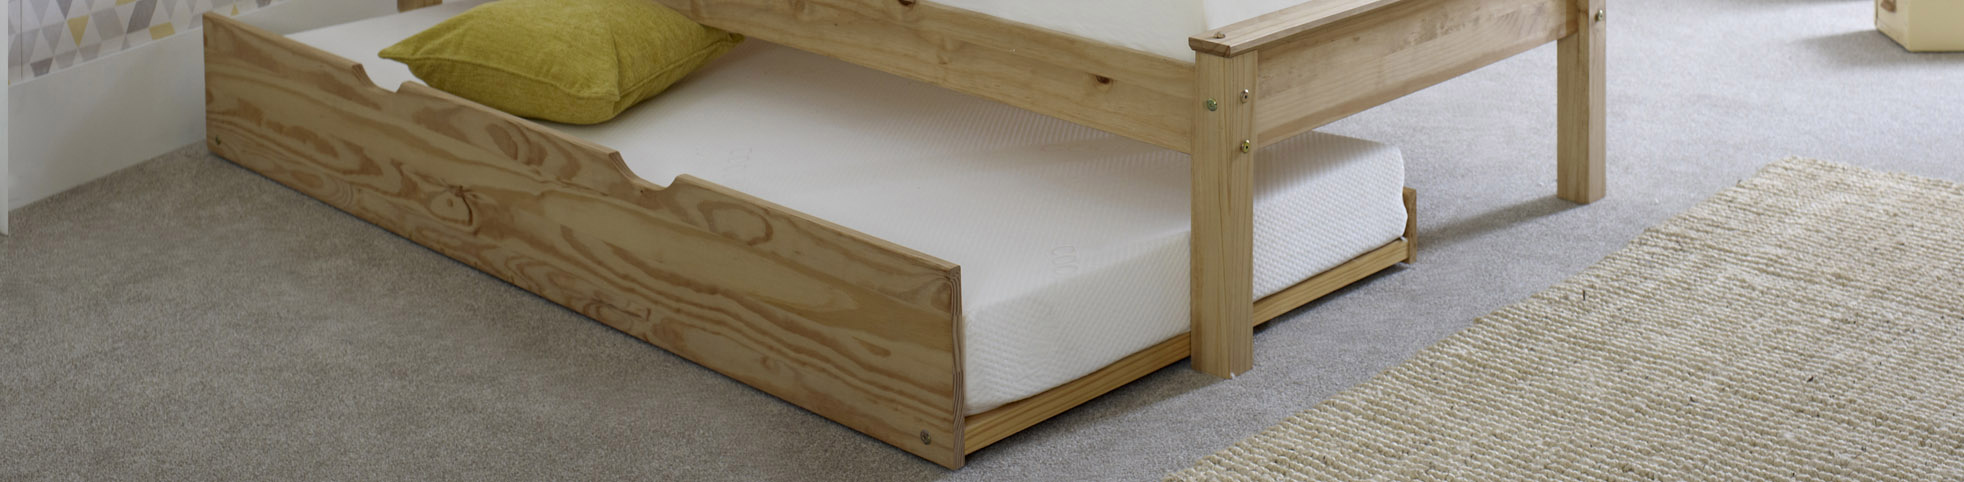 Waxed Trundle Bed